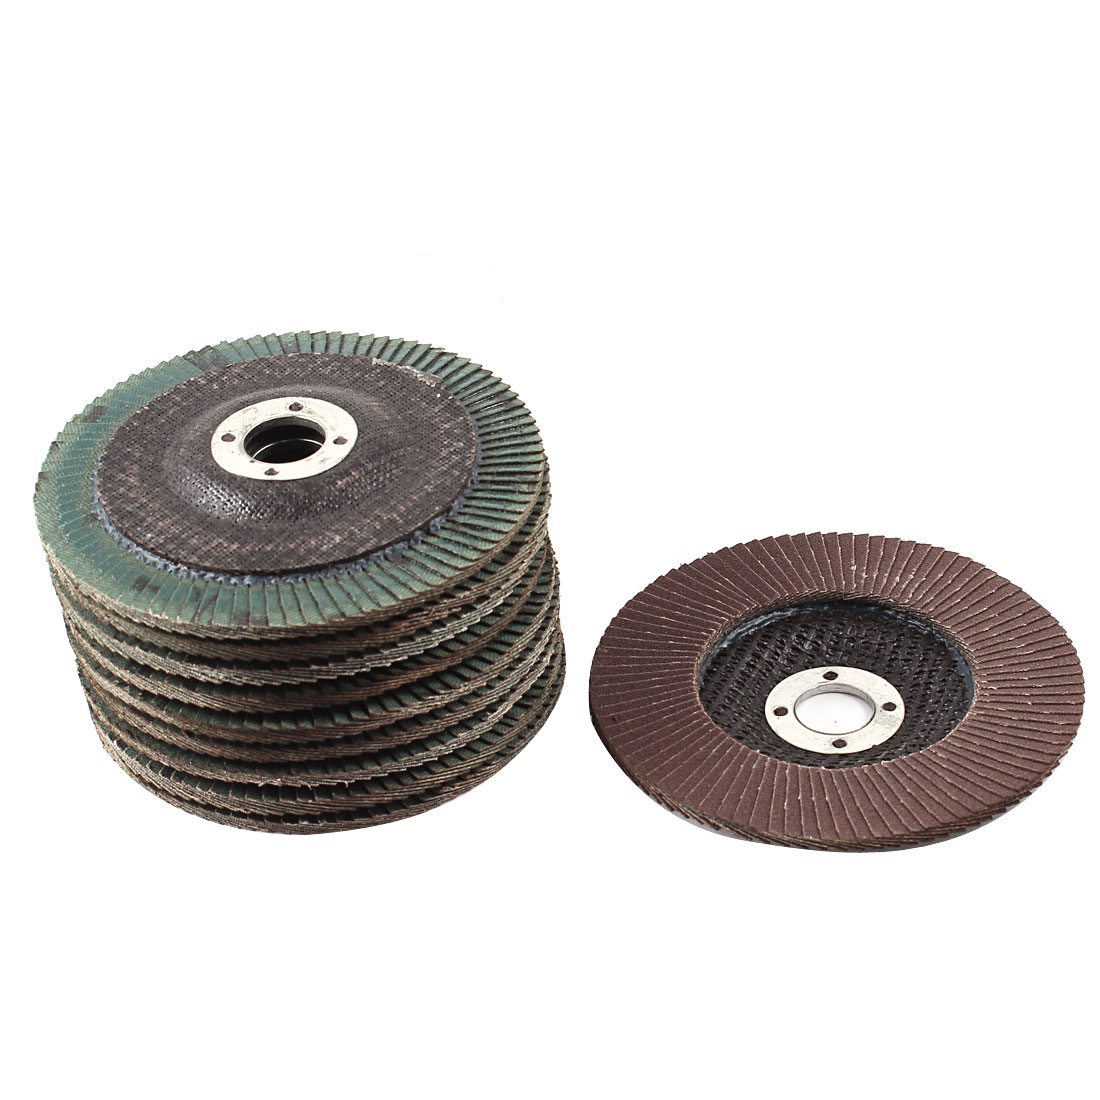 Metal Polishing 100mm Dia 320# Flap Sanding Abrasive Wheels Discs 10Pcs